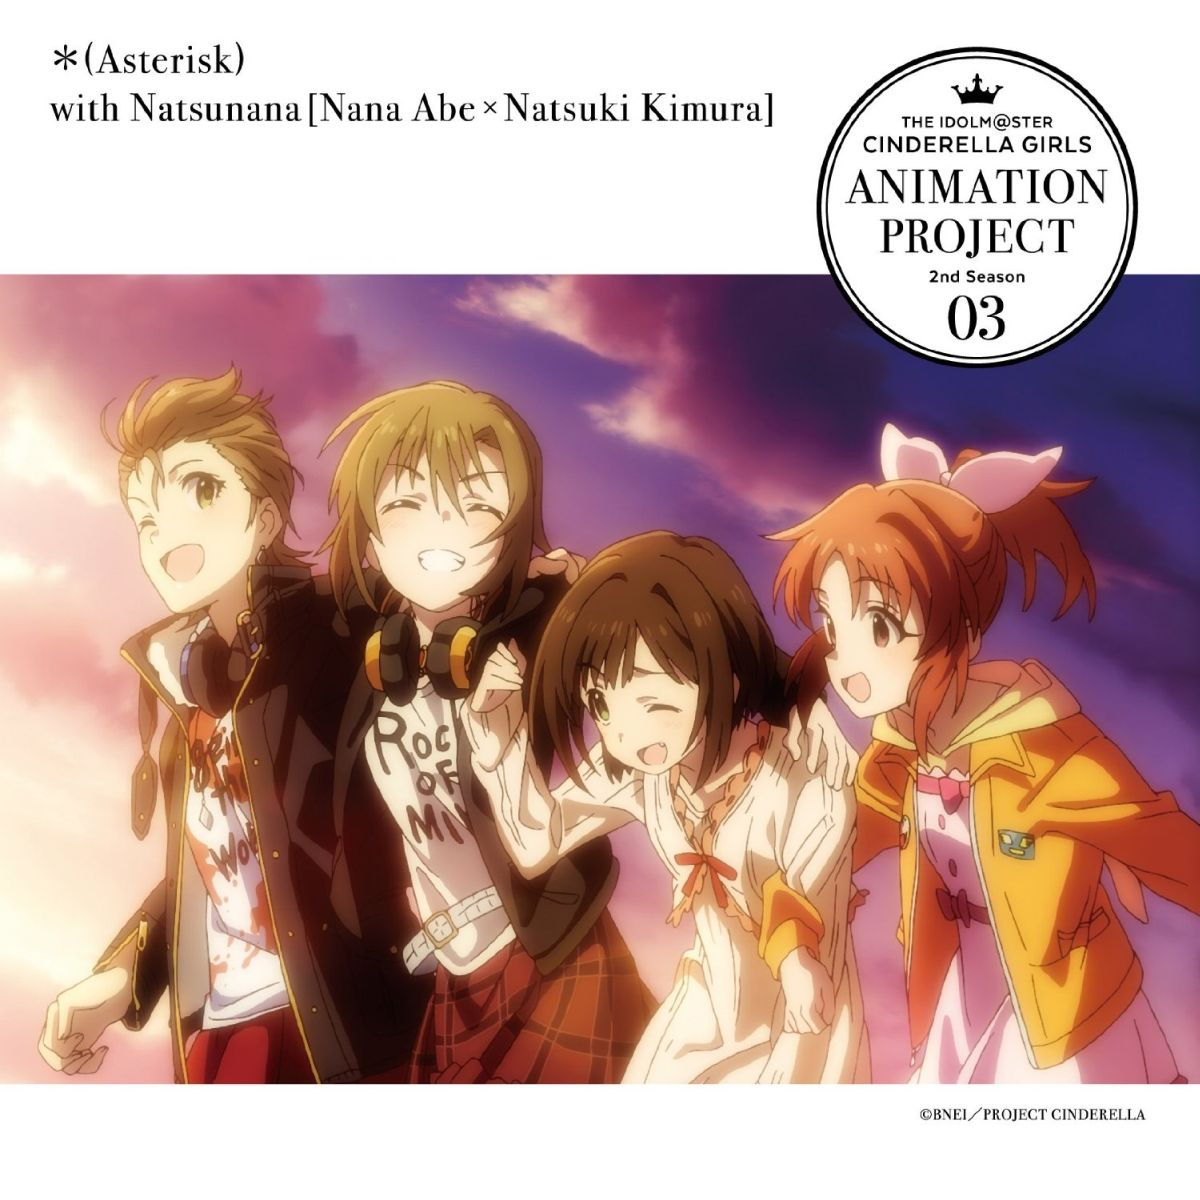 THE IDOLM@STER CINDERELLA GIRLS ANIMATION PROJECT 2nd Season 03画像